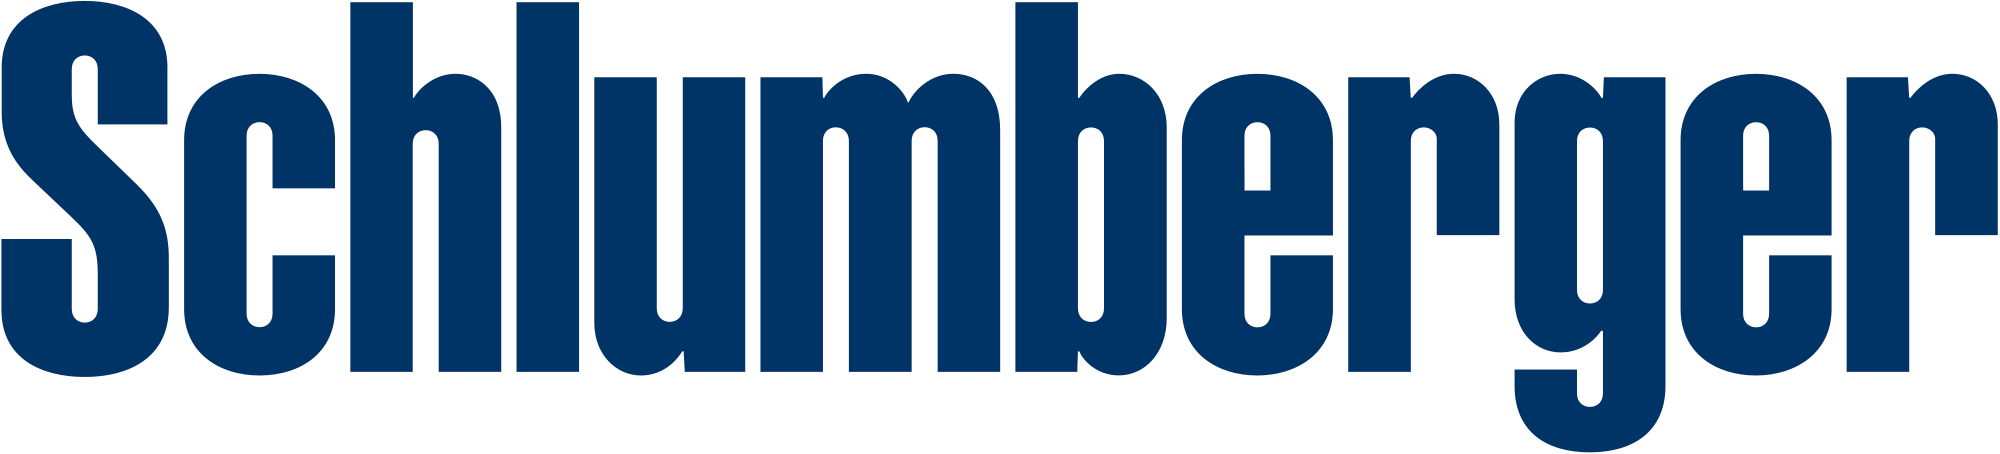 Schlumberger Logo - File:Schlumberger.svg - Wikimedia Commons